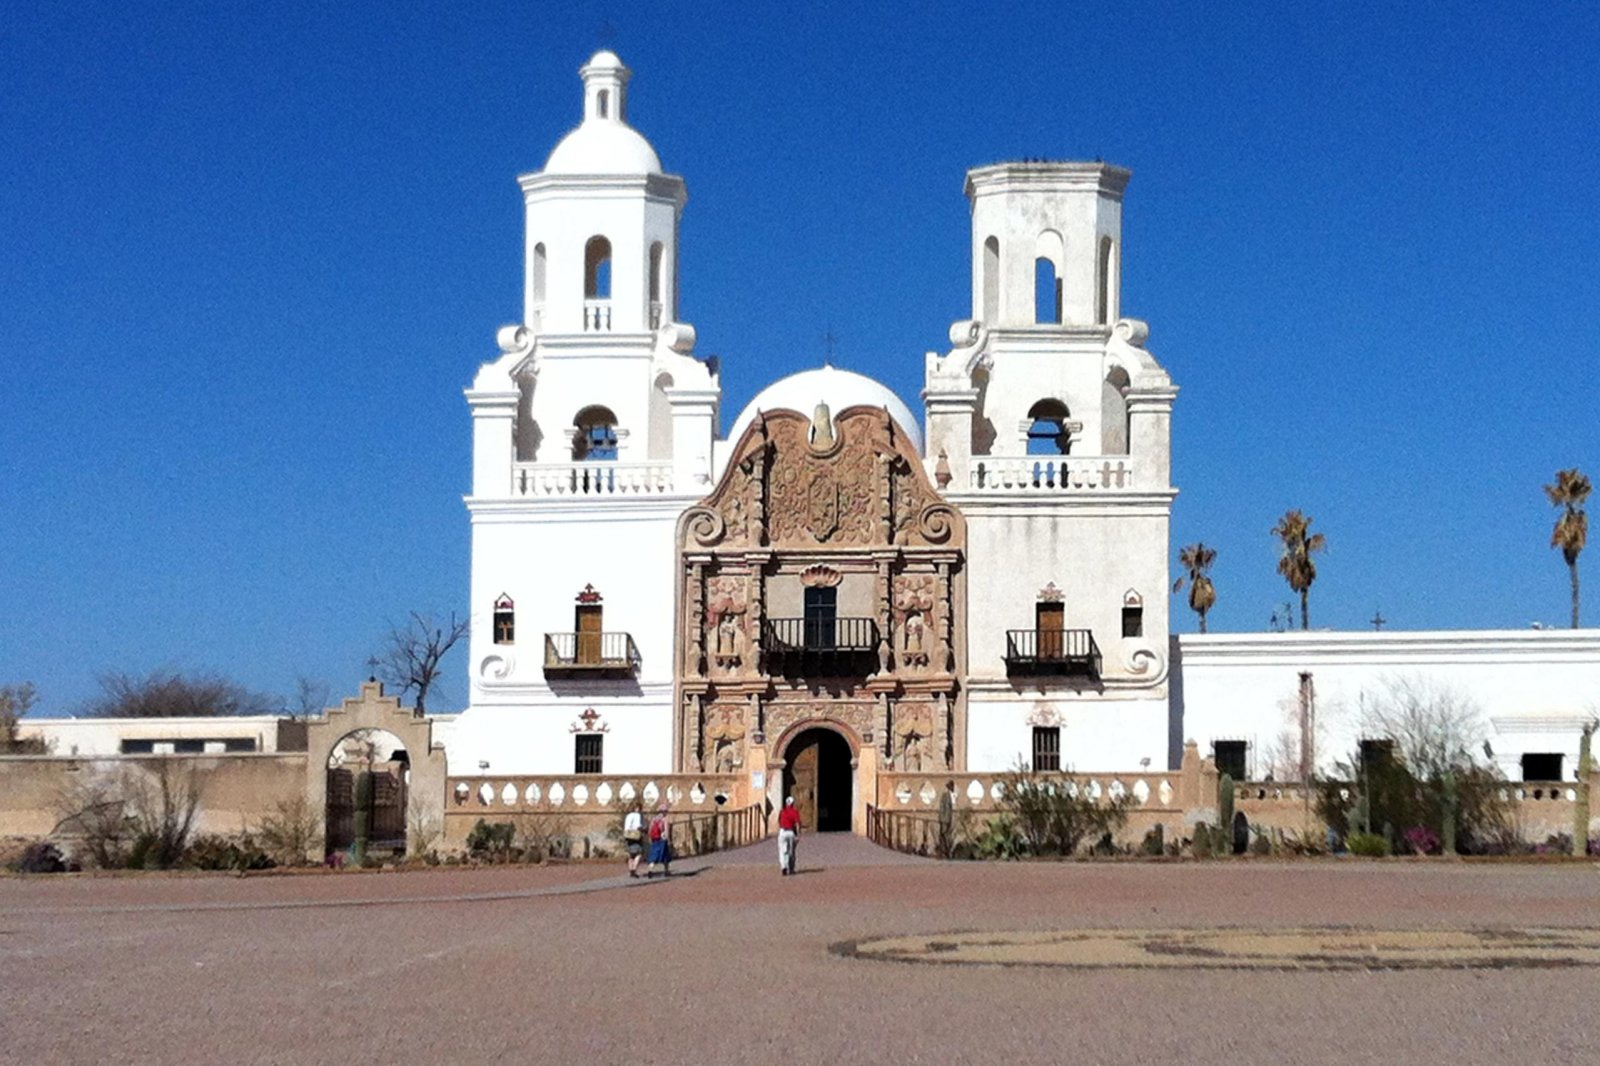 Click image for larger version  Name:Mission San Xavier1.jpg Views:69 Size:285.8 KB ID:178944